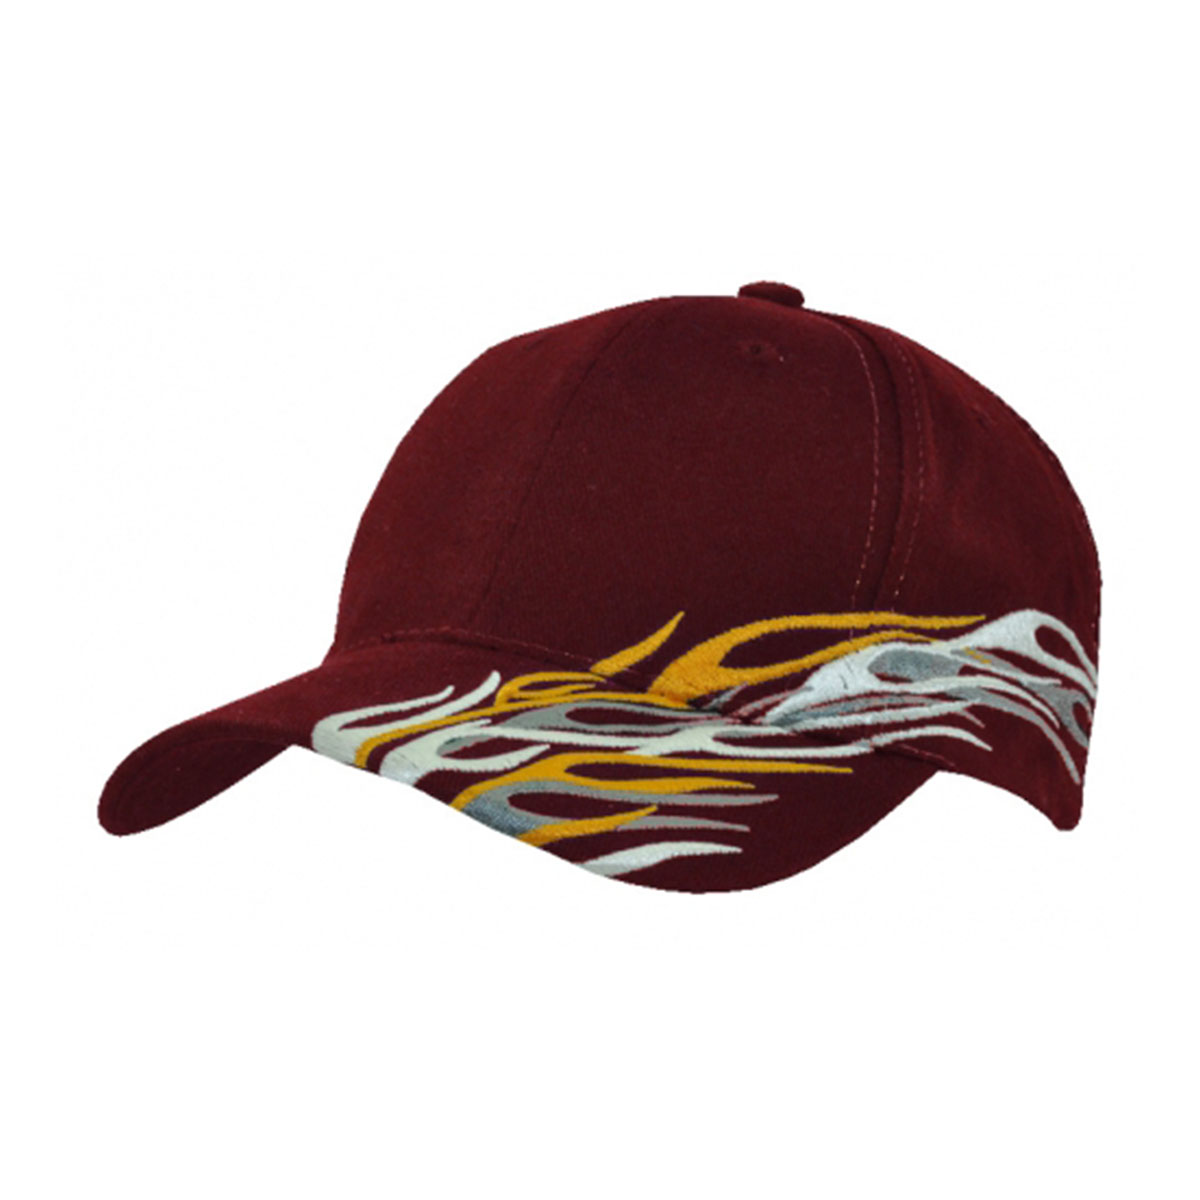 Cyclone Cap-Maroon / White / Grey / Gold